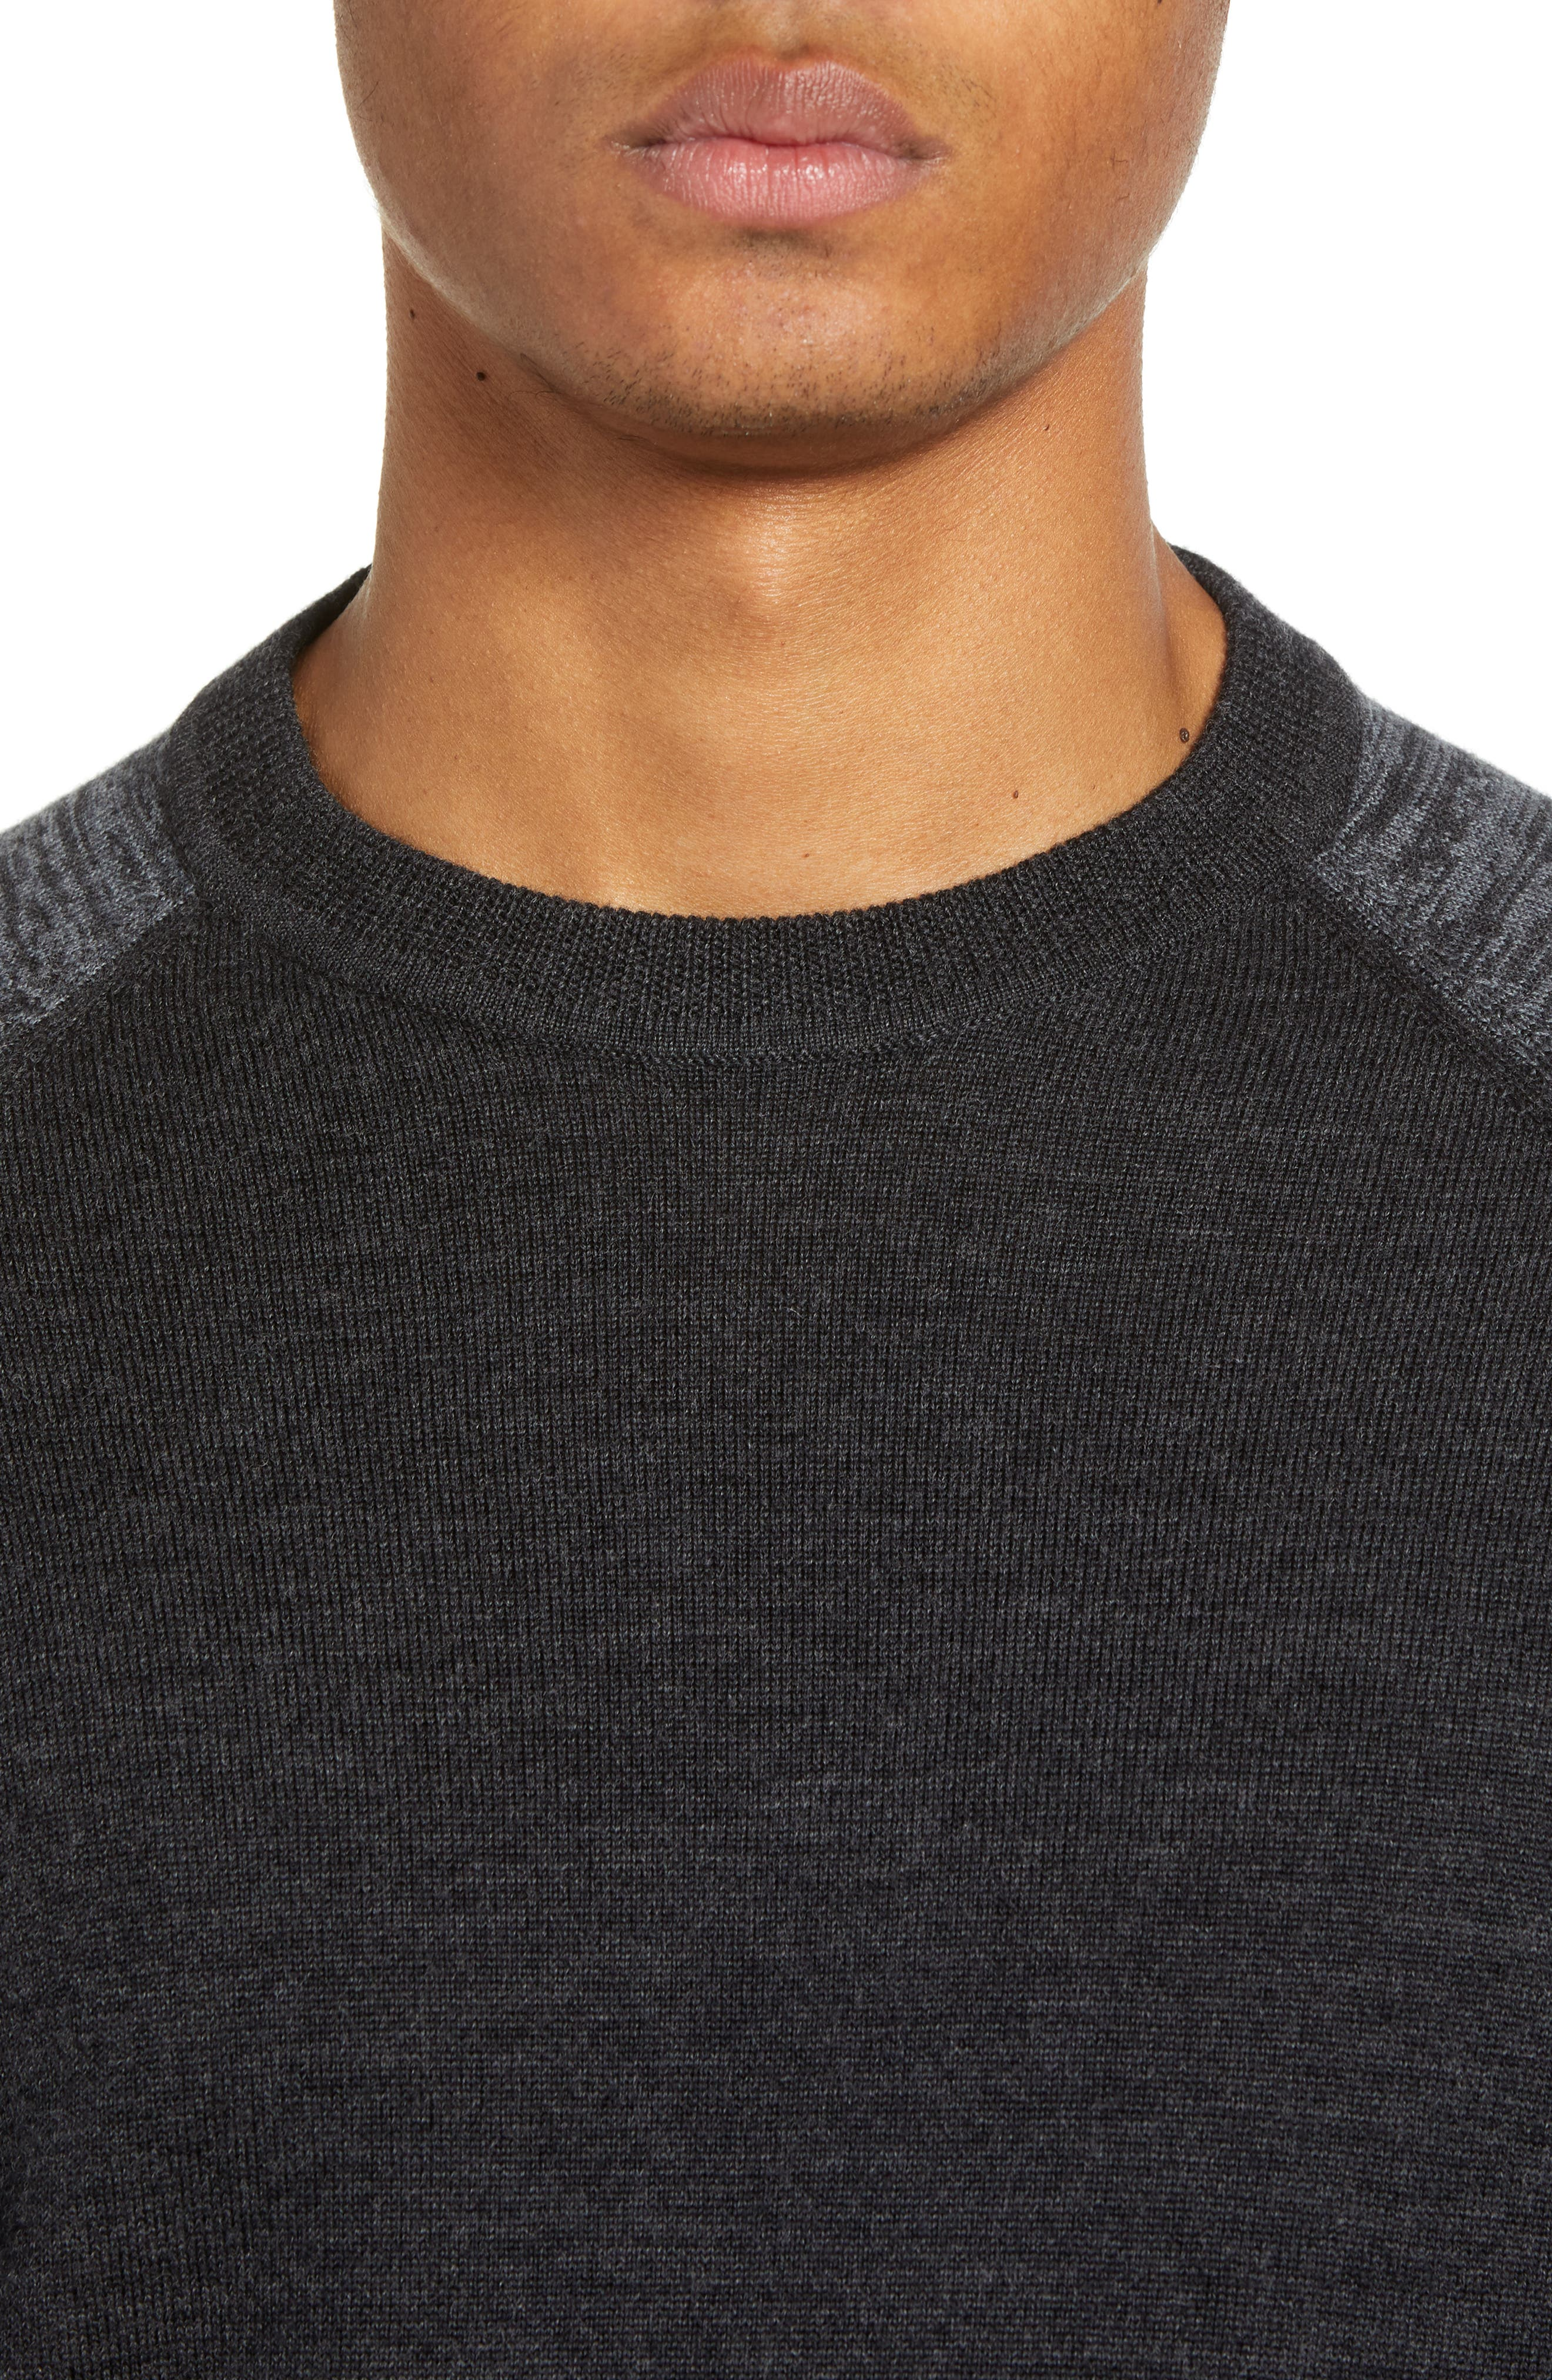 Cornfed Slim Fit Sweater,                             Alternate thumbnail 4, color,                             CHARCOAL